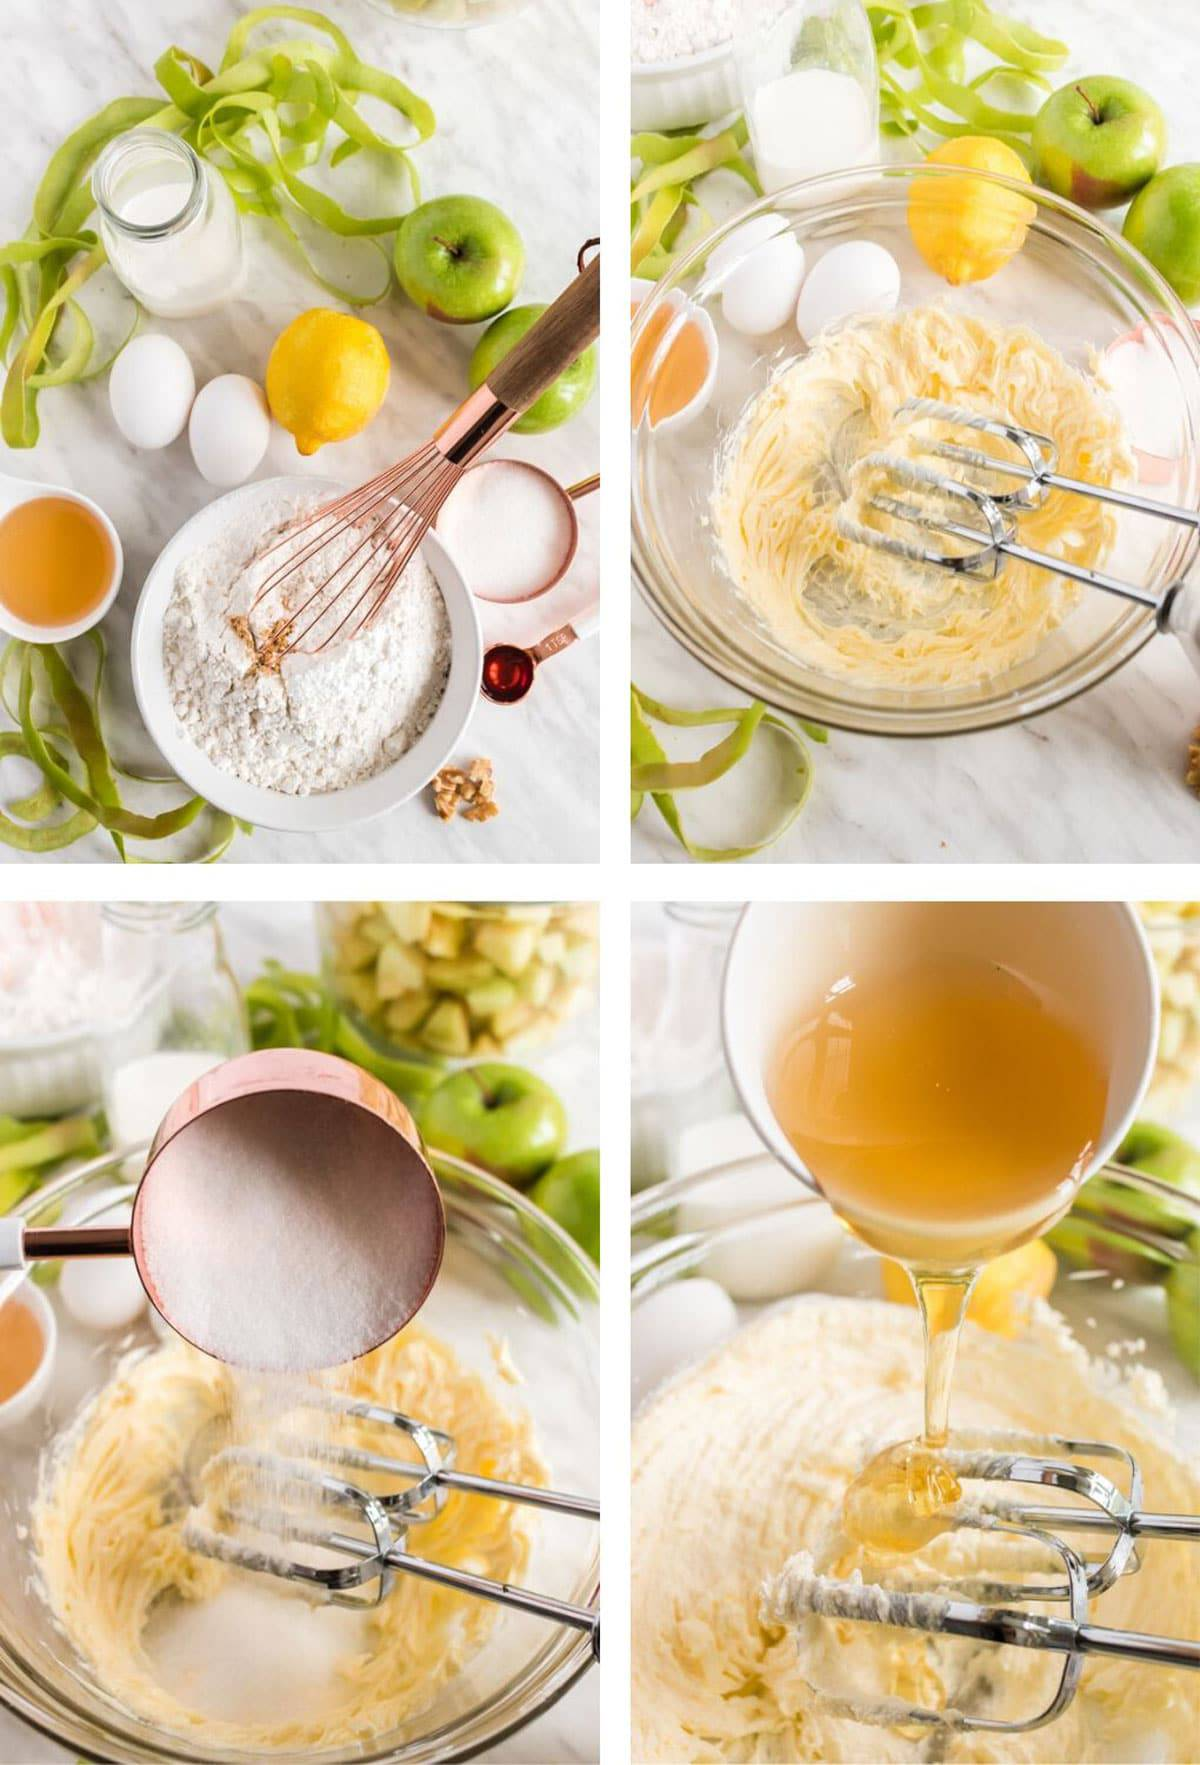 A mixing bowl with baking ingredients